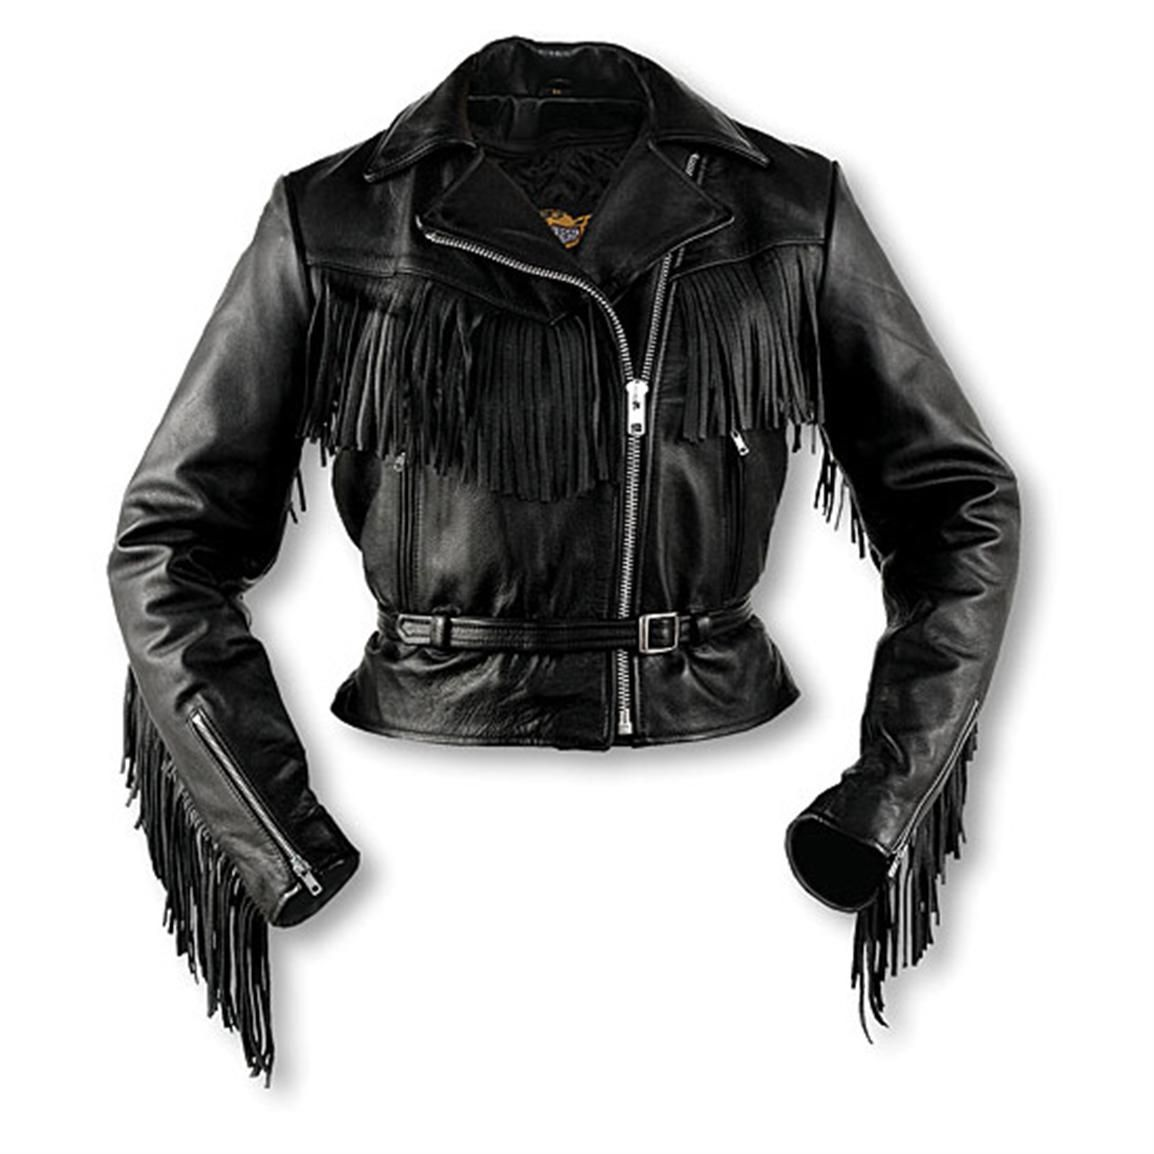 Leather Biker Jackets For Women With Fringe Interstate Leather Fringe Jacket 469803 Leather Jackets At Fringe Leather Jacket Jackets Leather Jacket Style [ 1154 x 1154 Pixel ]